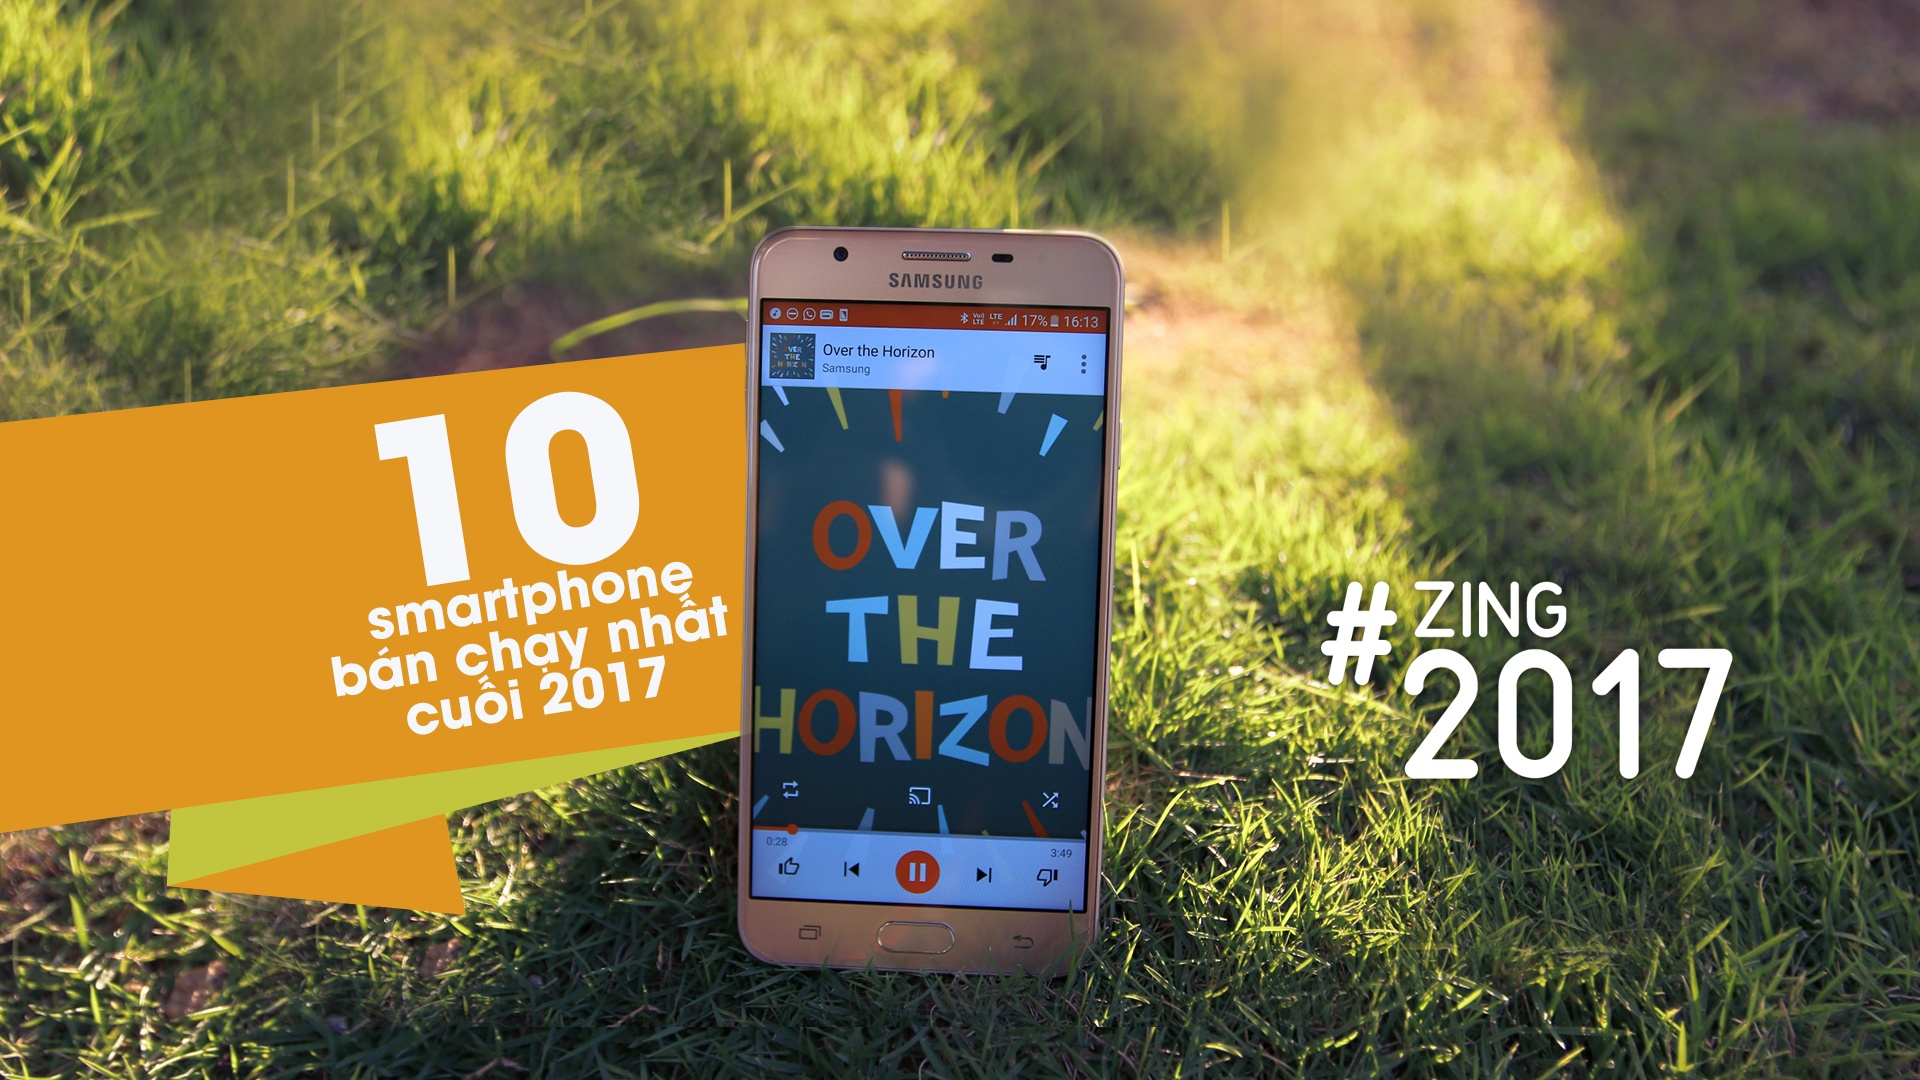 smartphone ban chay nhat cuoi 2017 anh 1